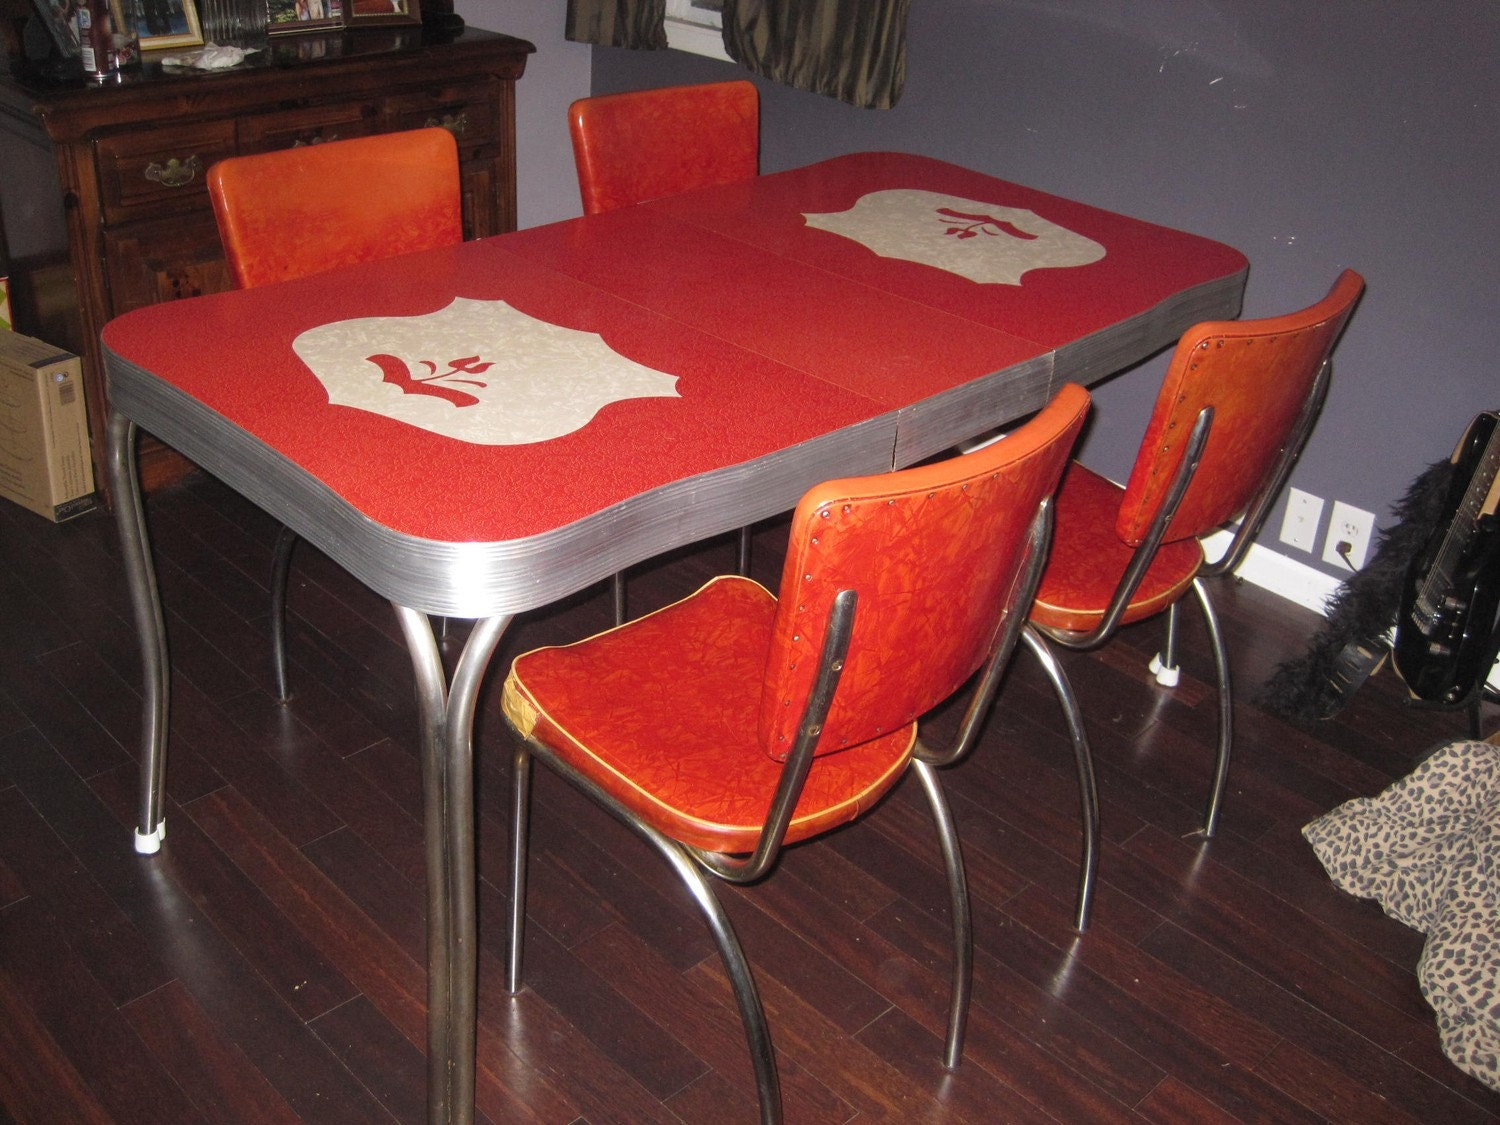 Price reduced again 1950s formica table - Formica top kitchen tables ...